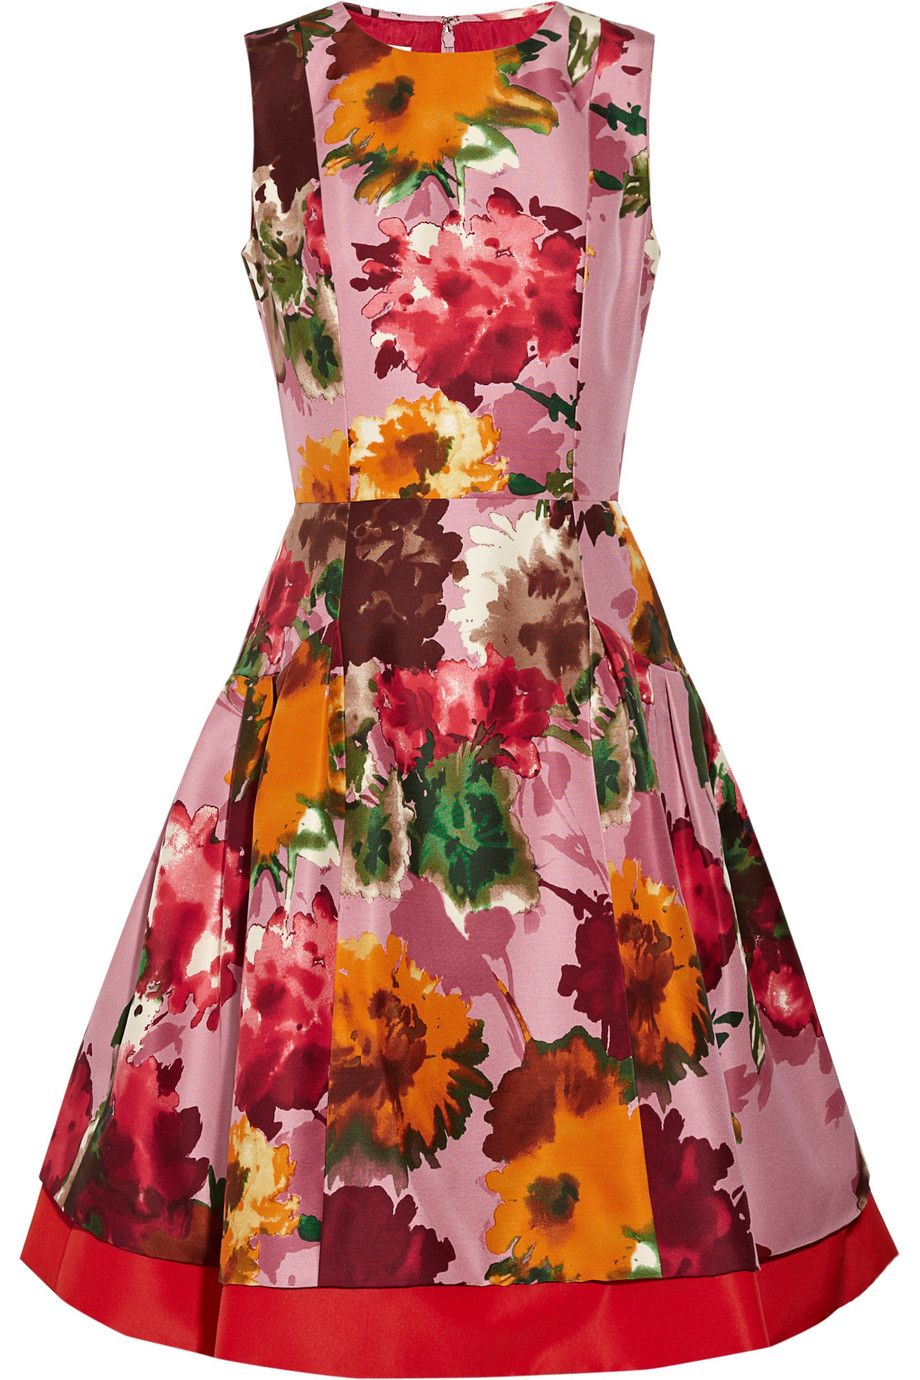 Fl Print Silk Twill Dress By Oscar De La A For The Outnet Channeling My Inner June Cleaver